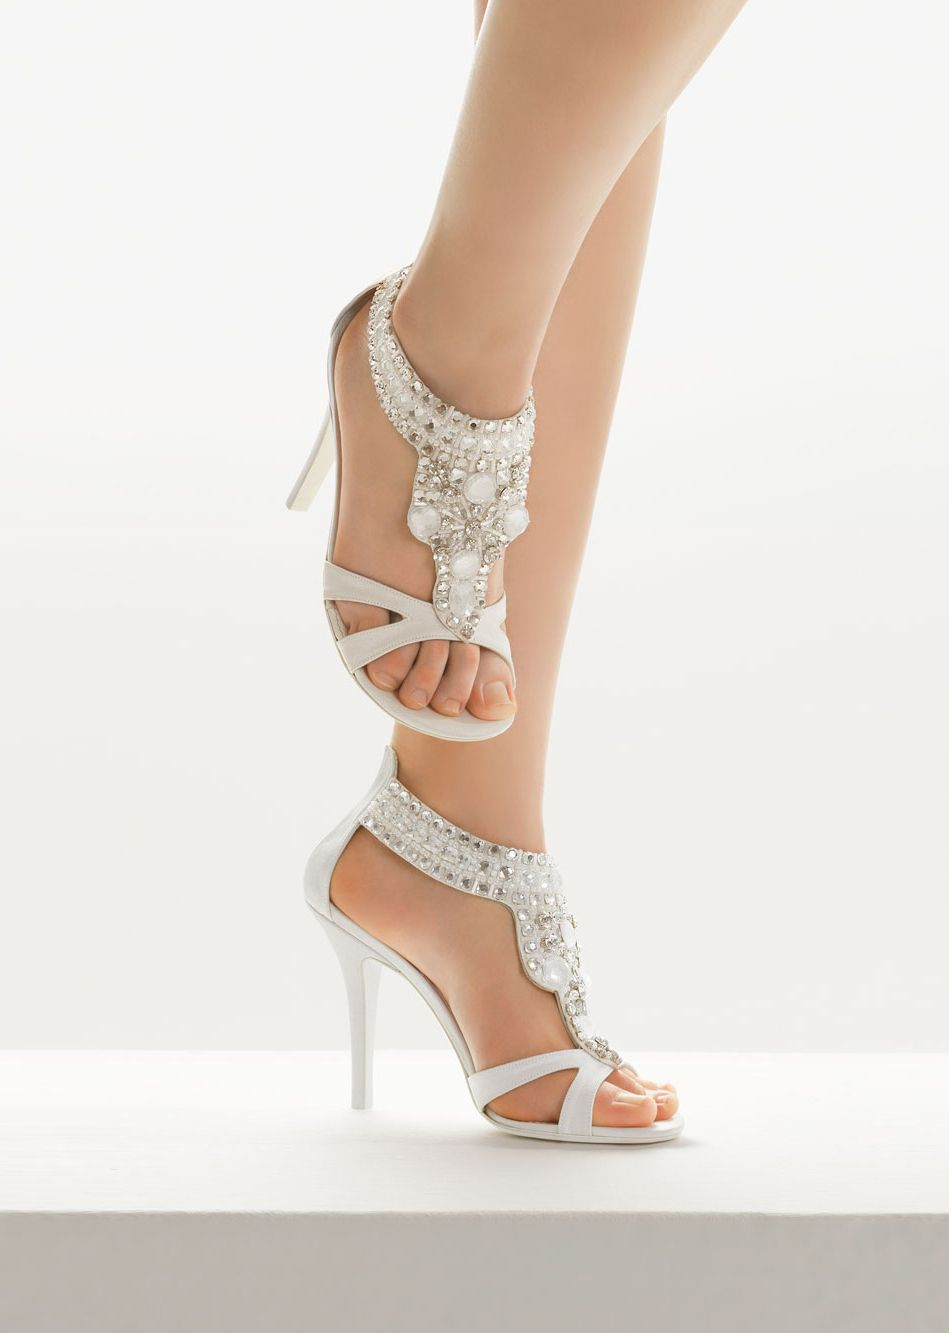 strappy jeweled sandals by Rosa Clará